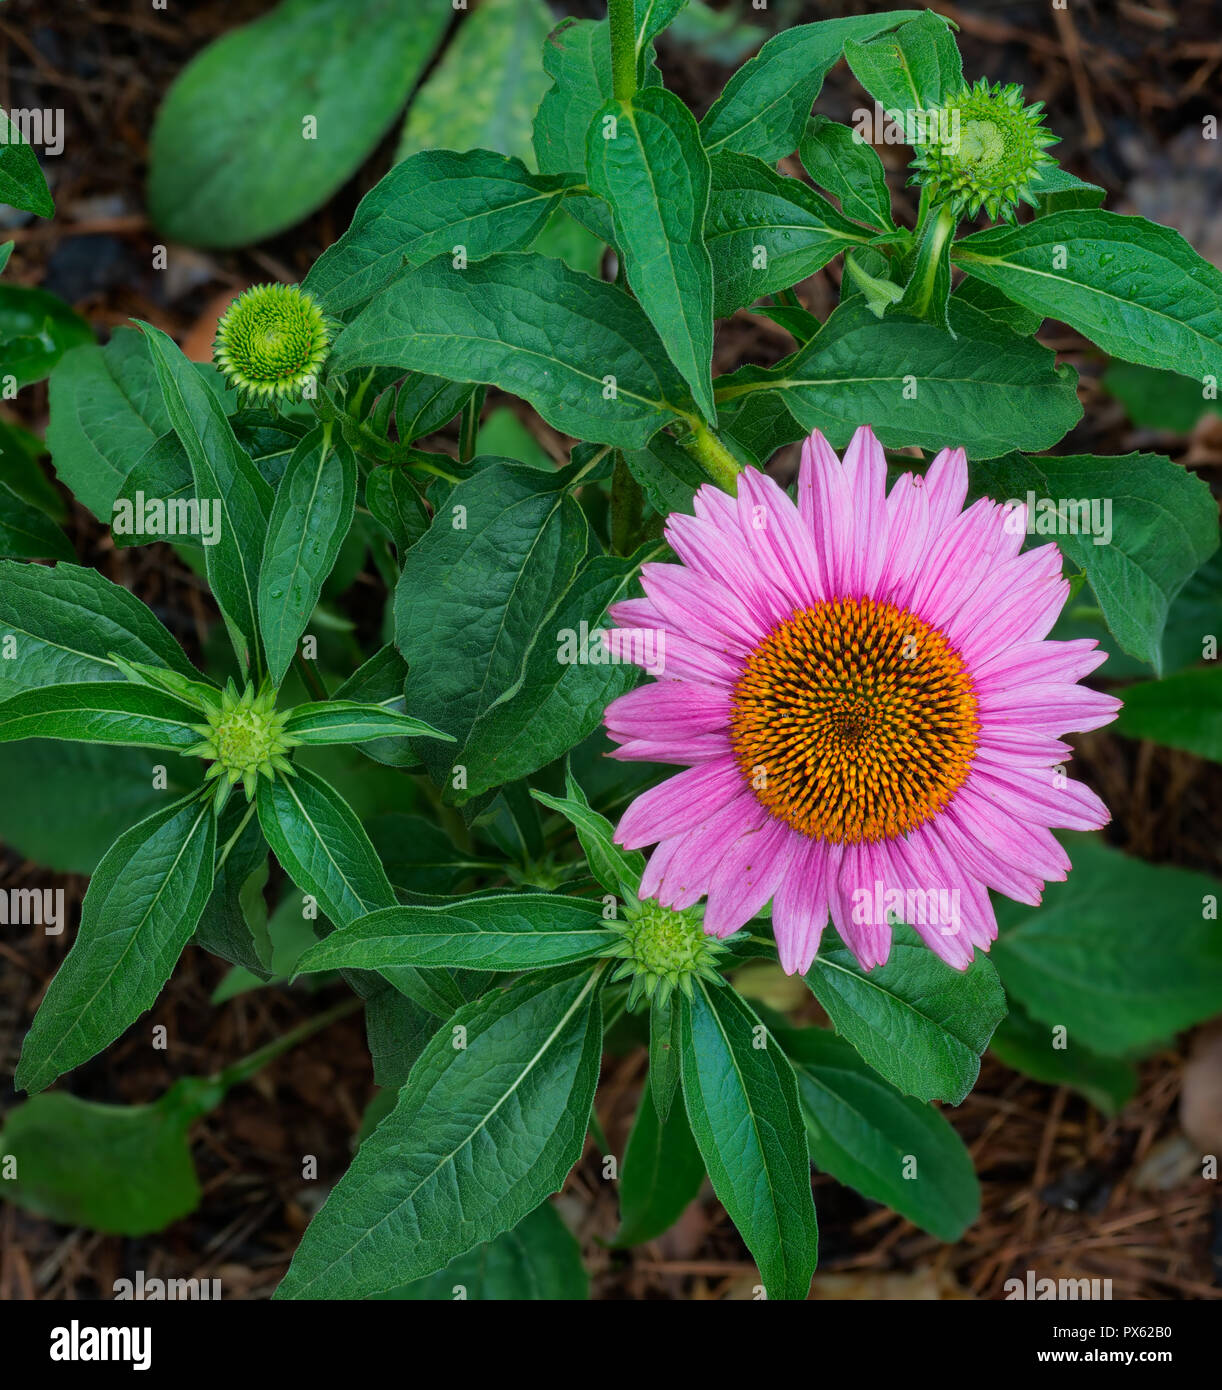 Purple coneflower (Echinacea purpurea) and several buds in garden in central Virginia in early summer. - Stock Image